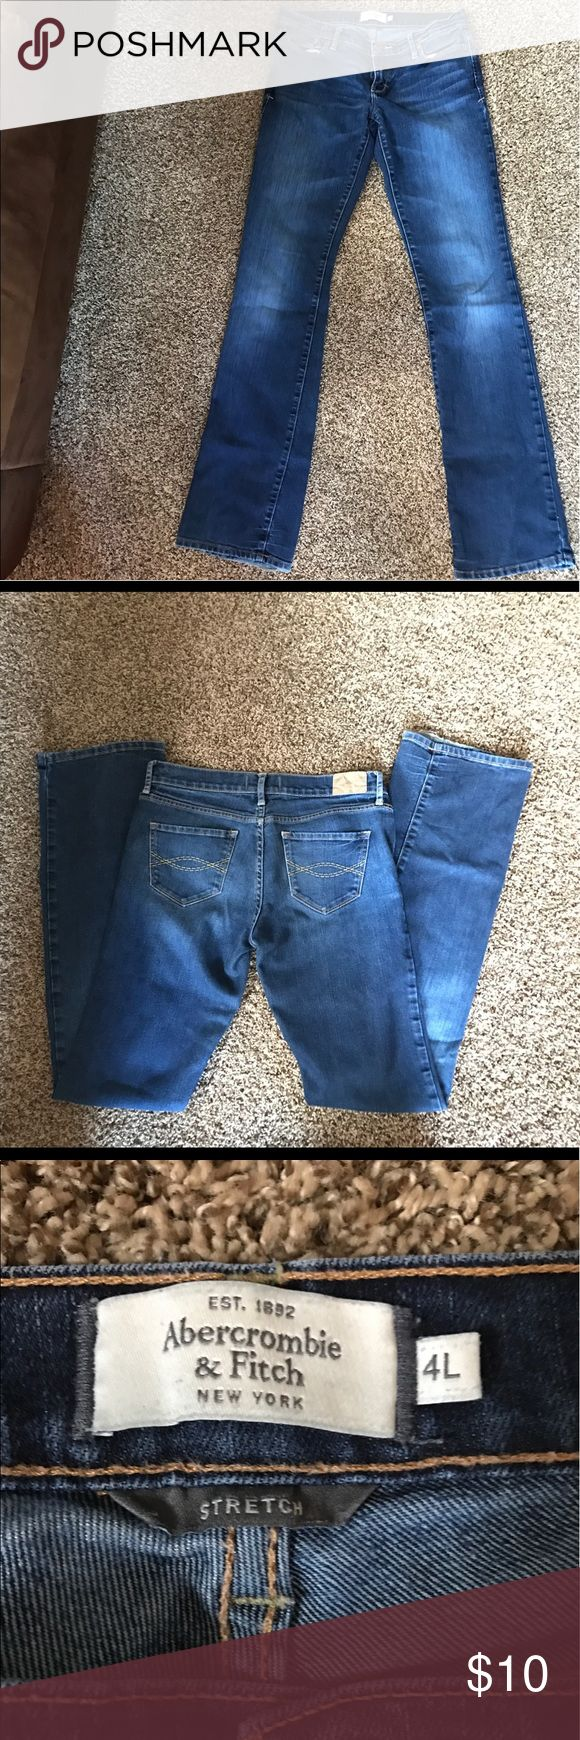 Abercrombie and Fitch Jeans Size 4 long Abercrombie and Fitch Jeans. Stretchy. Excellent condition! Abercrombie & Fitch Jeans Boot Cut